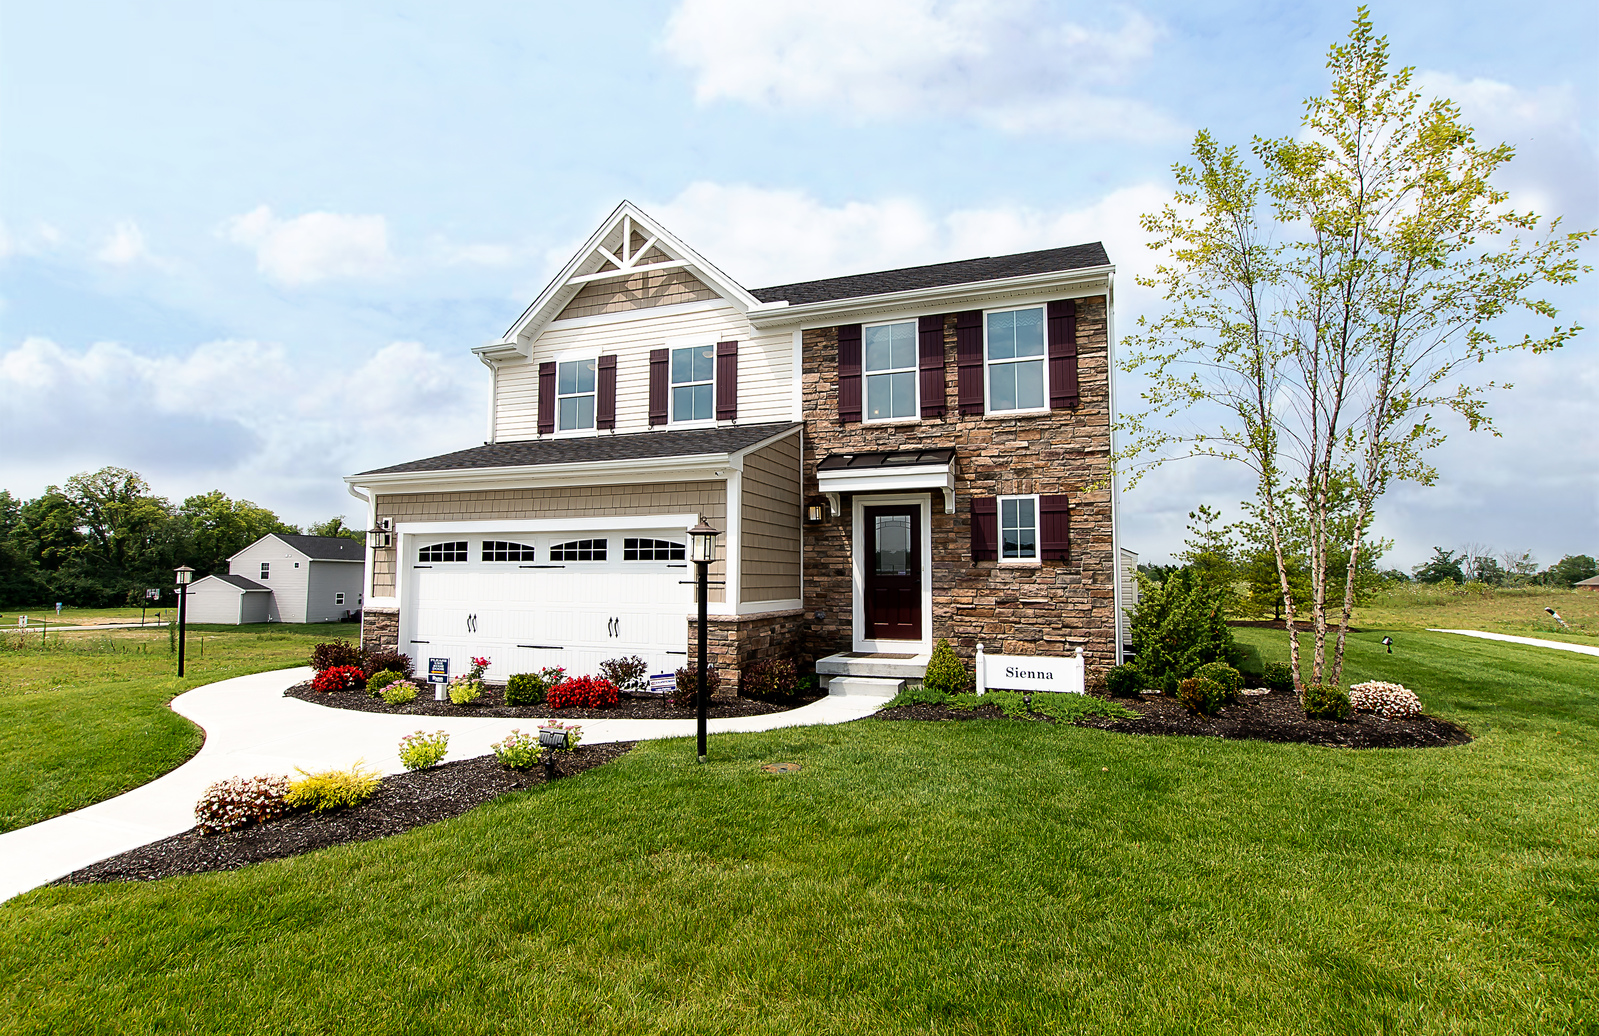 New Homes for sale at Piatt Estates in Chartiers Township PA within